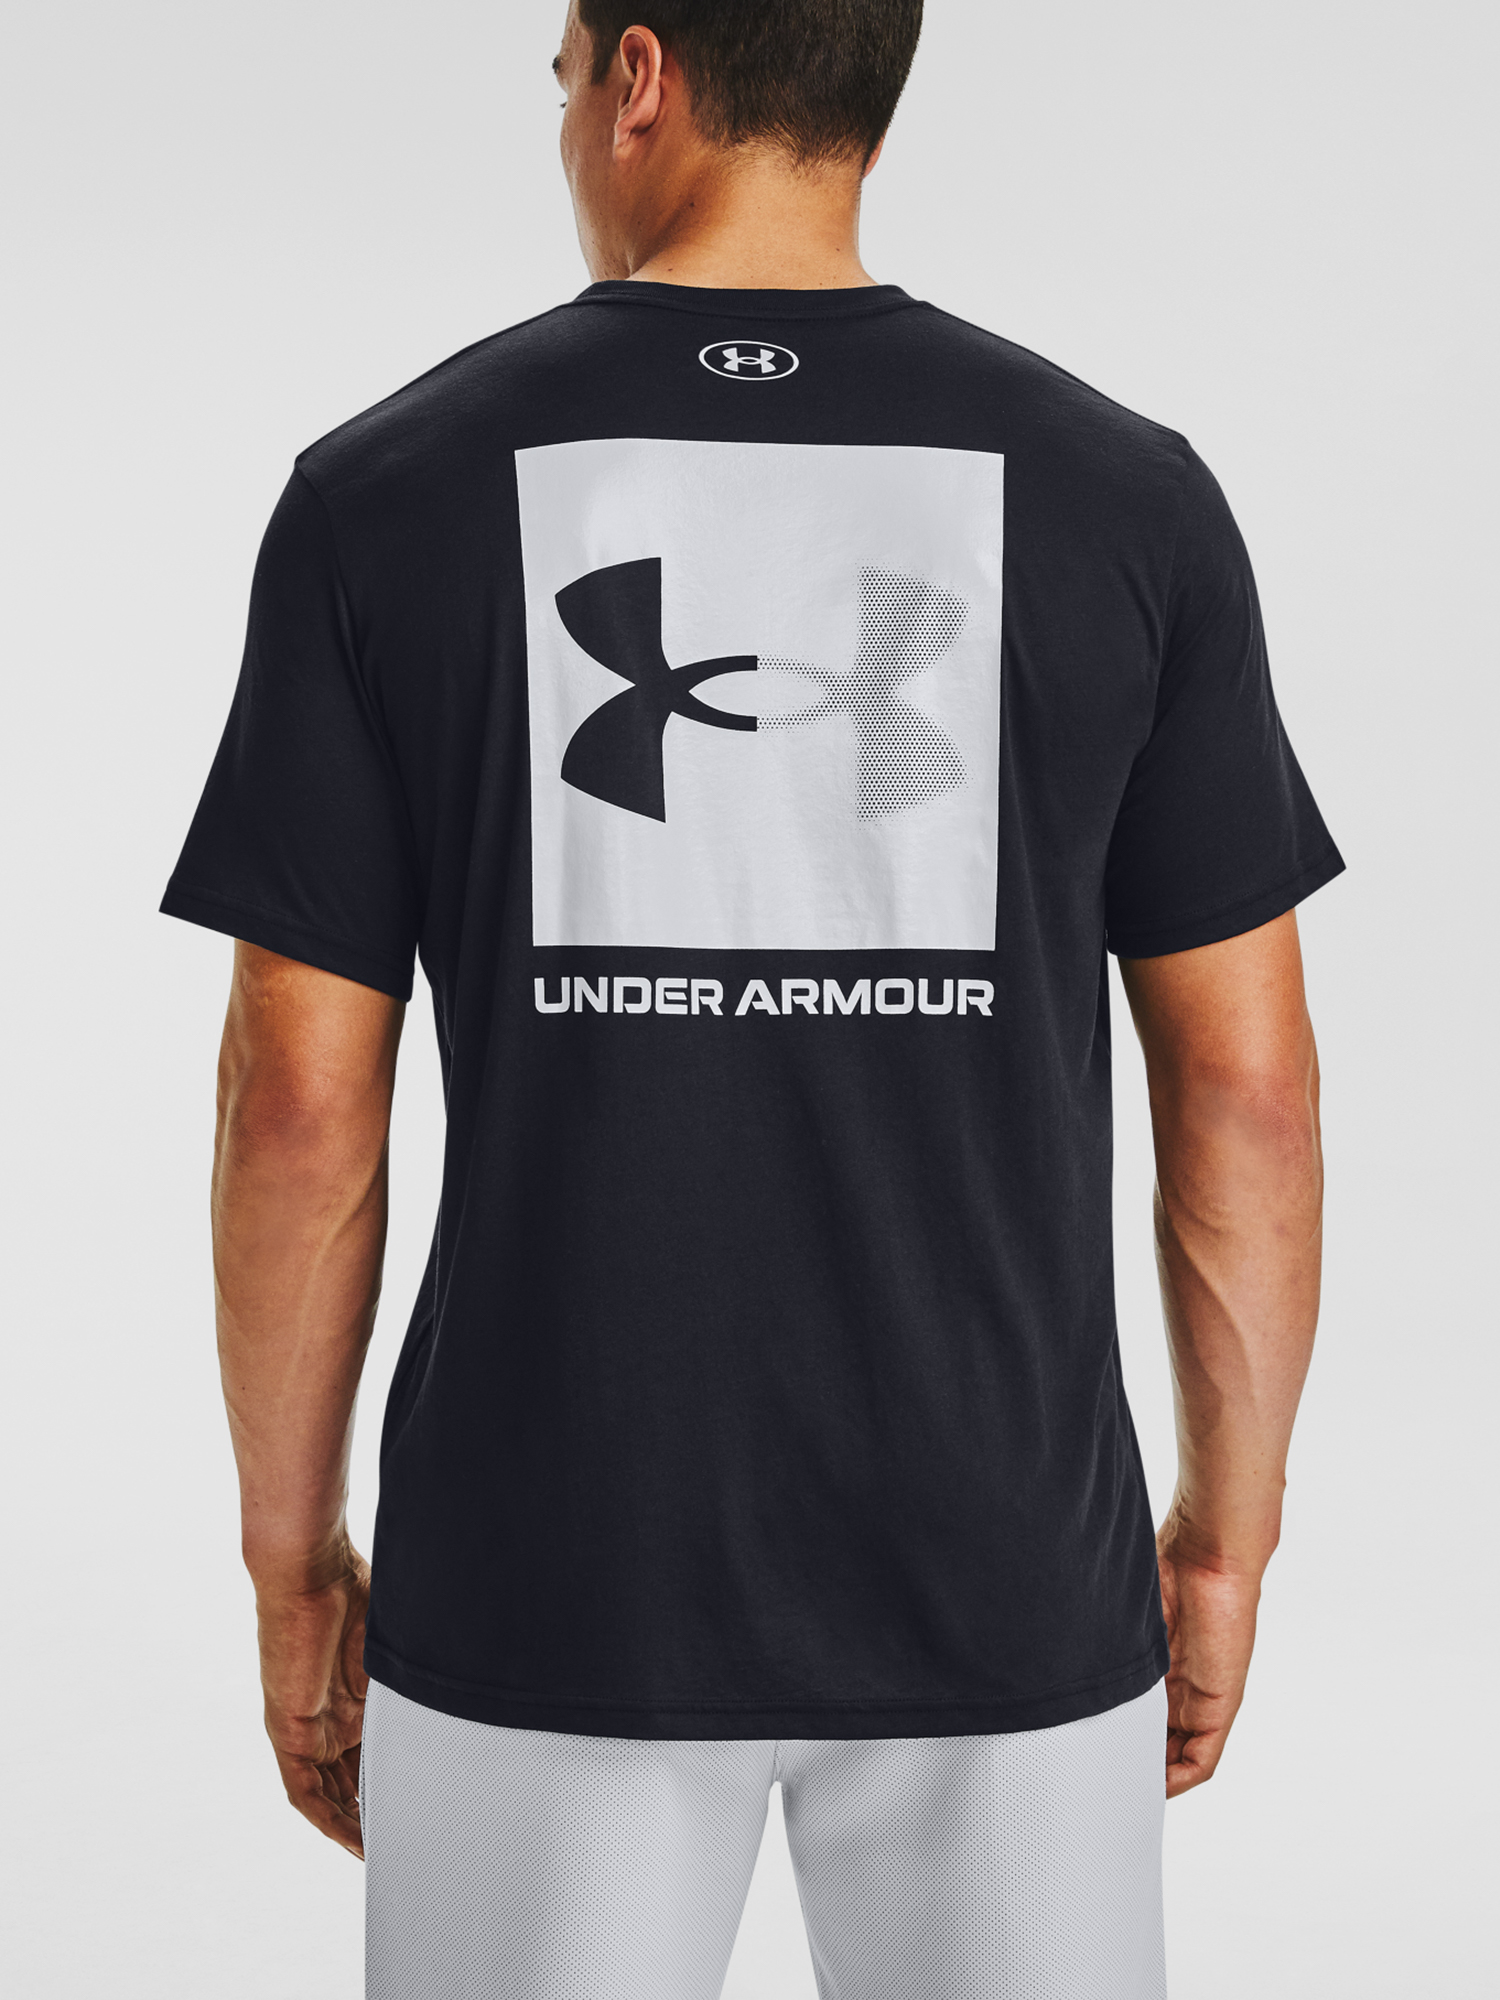 Tričko Under Armour UA BOX LOGO SS-BLK (2)